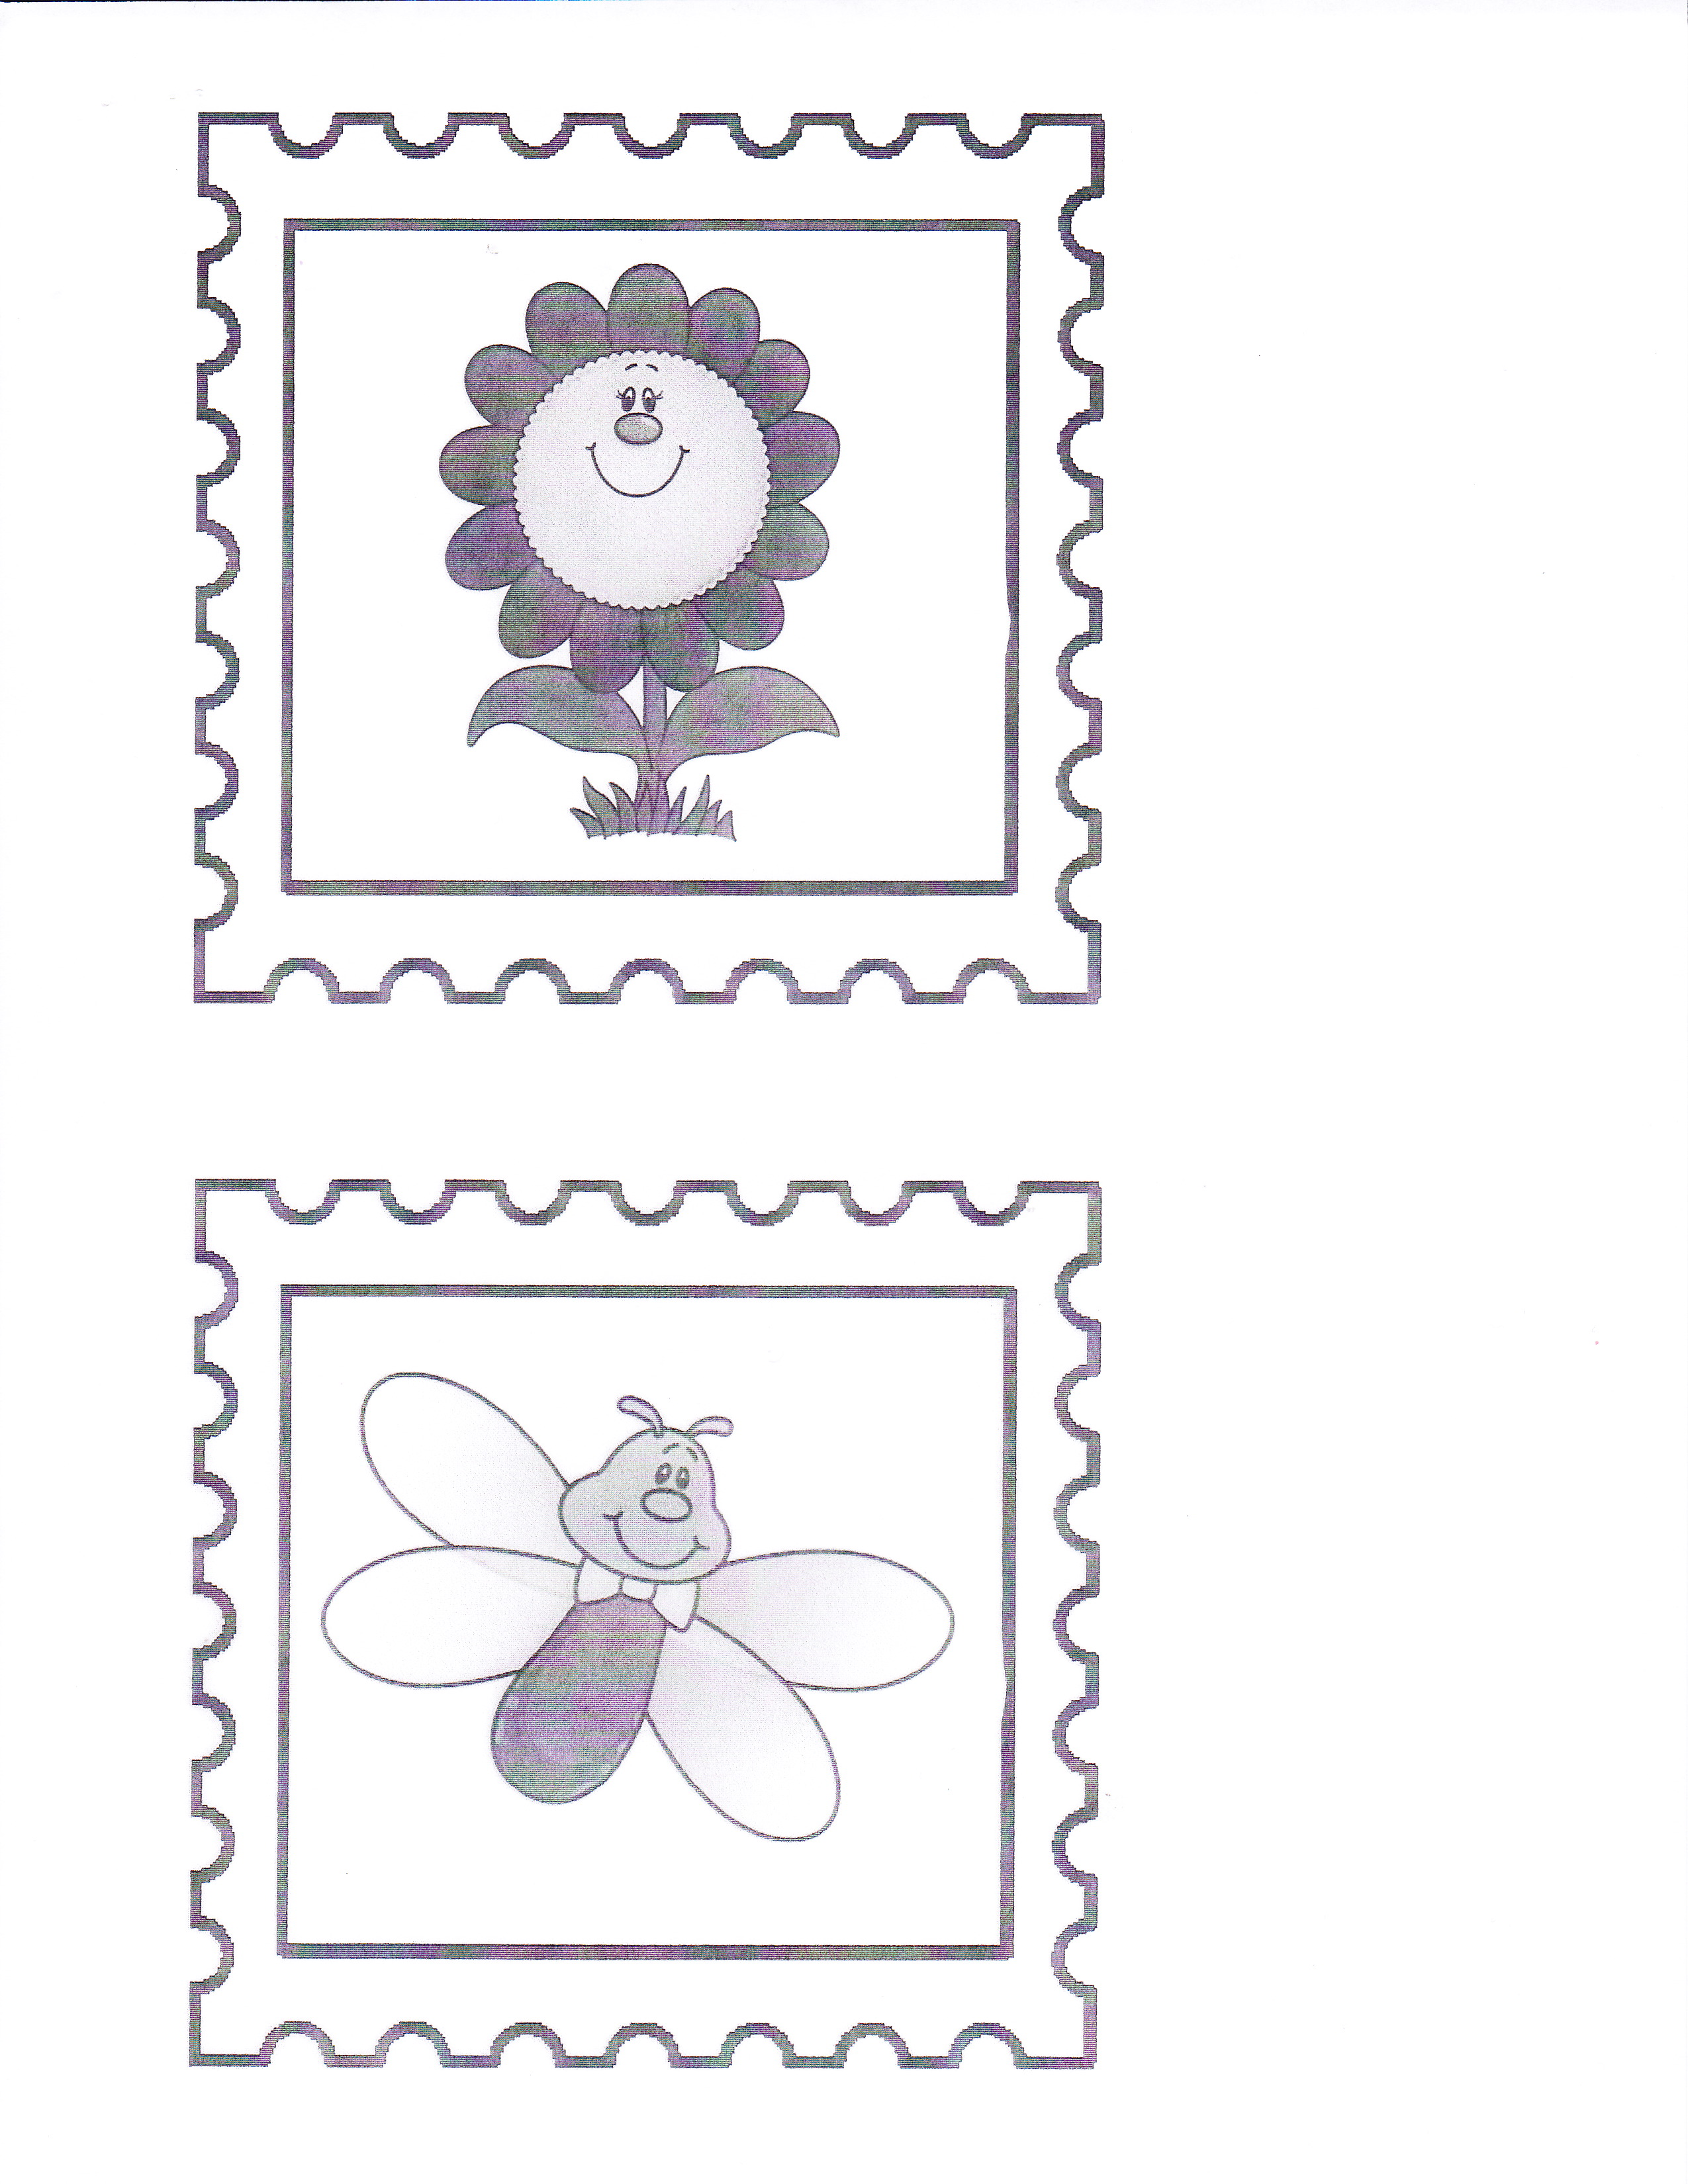 Dramatic play center ideas kindergarten nana for Post office design your own stamps